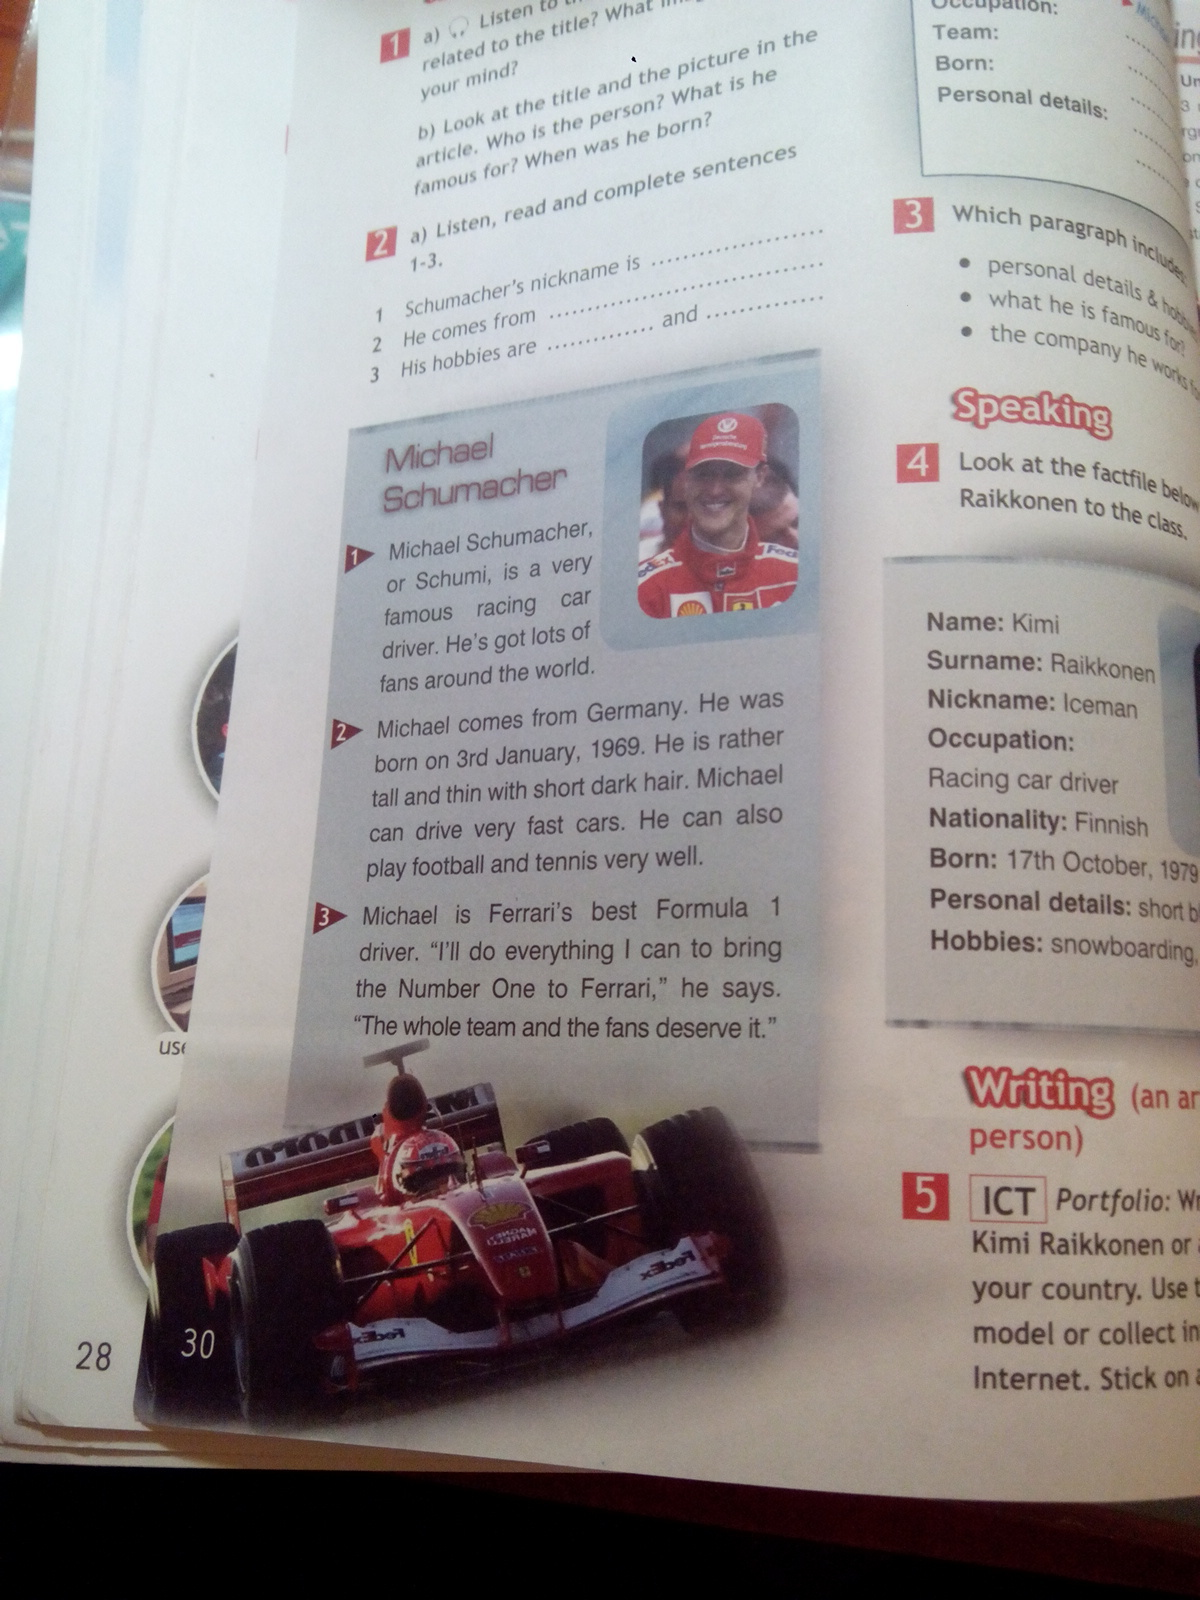 Michael Schumacher, or Schumi, is a very famous racing car driver?